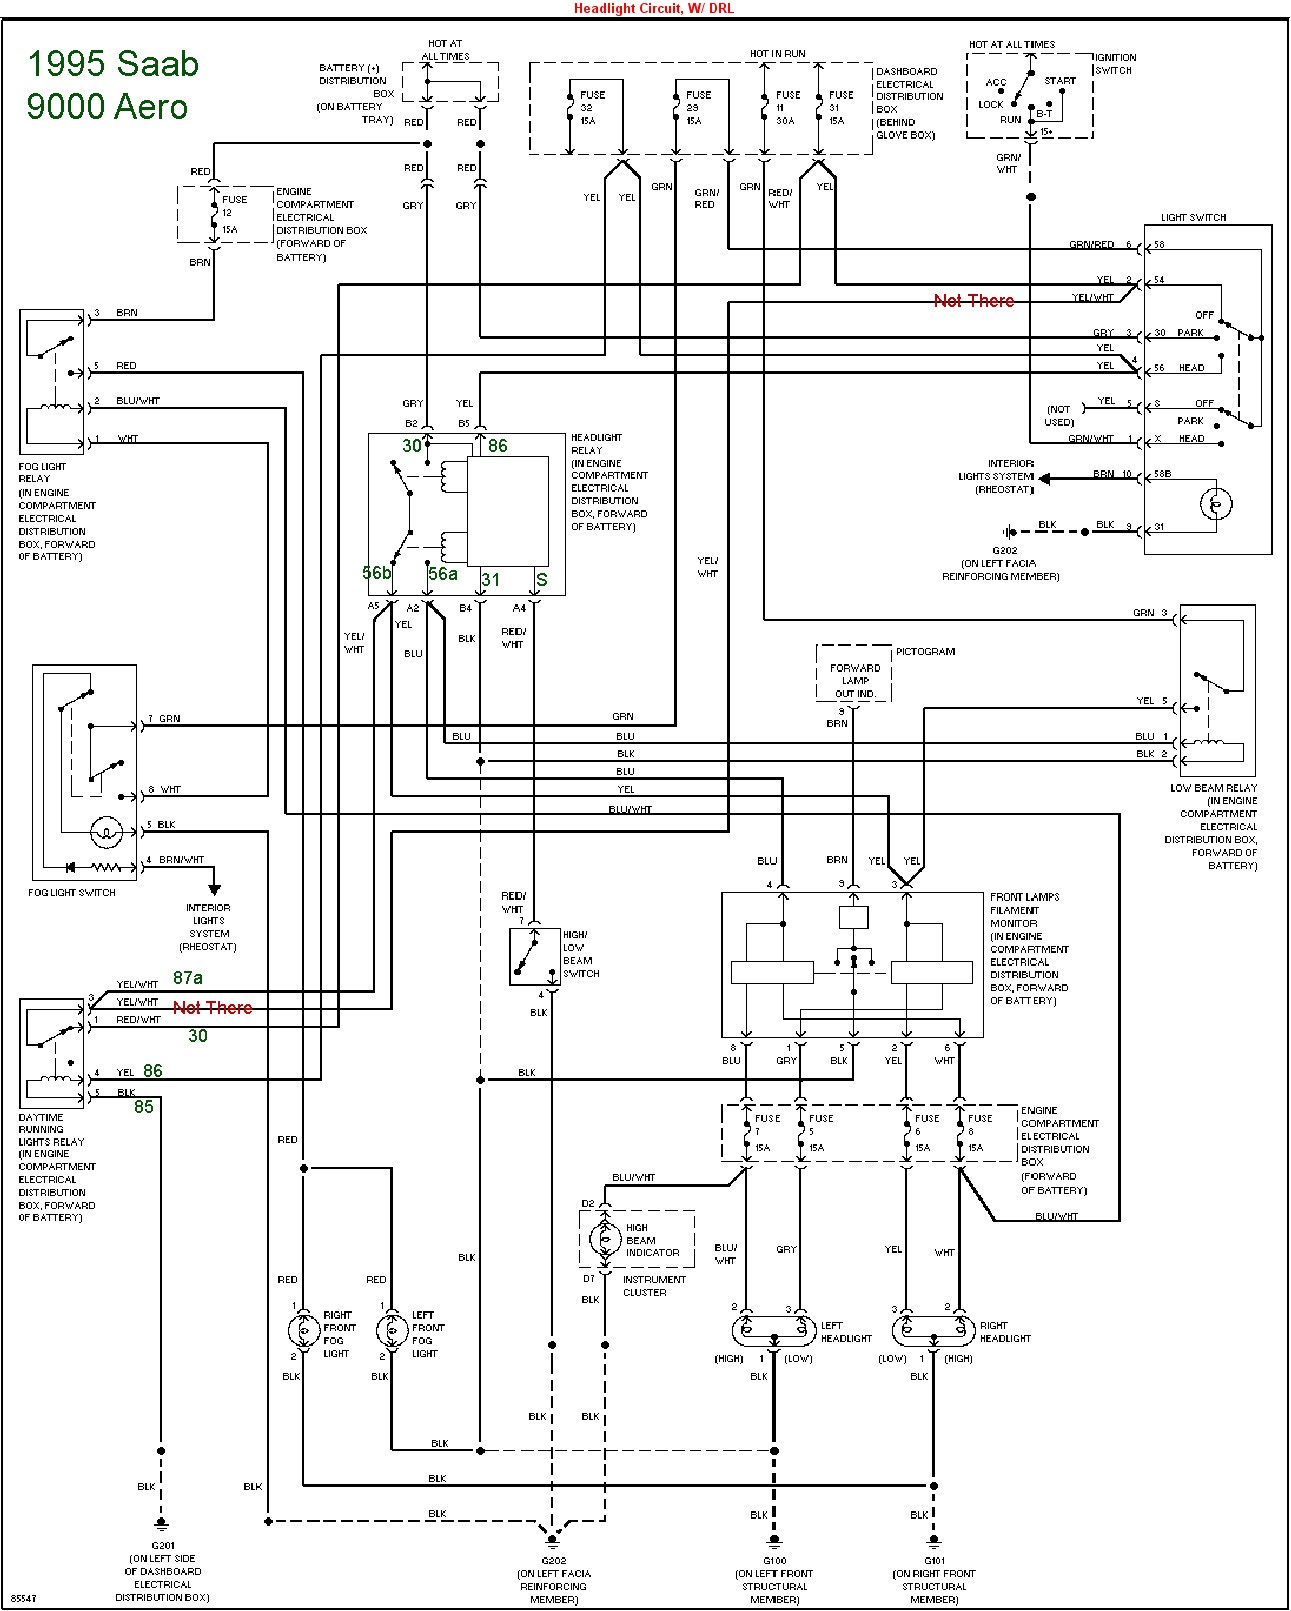 2003 Isuzu Npr Wiring Diagram. isuzu npr fuse box diagram